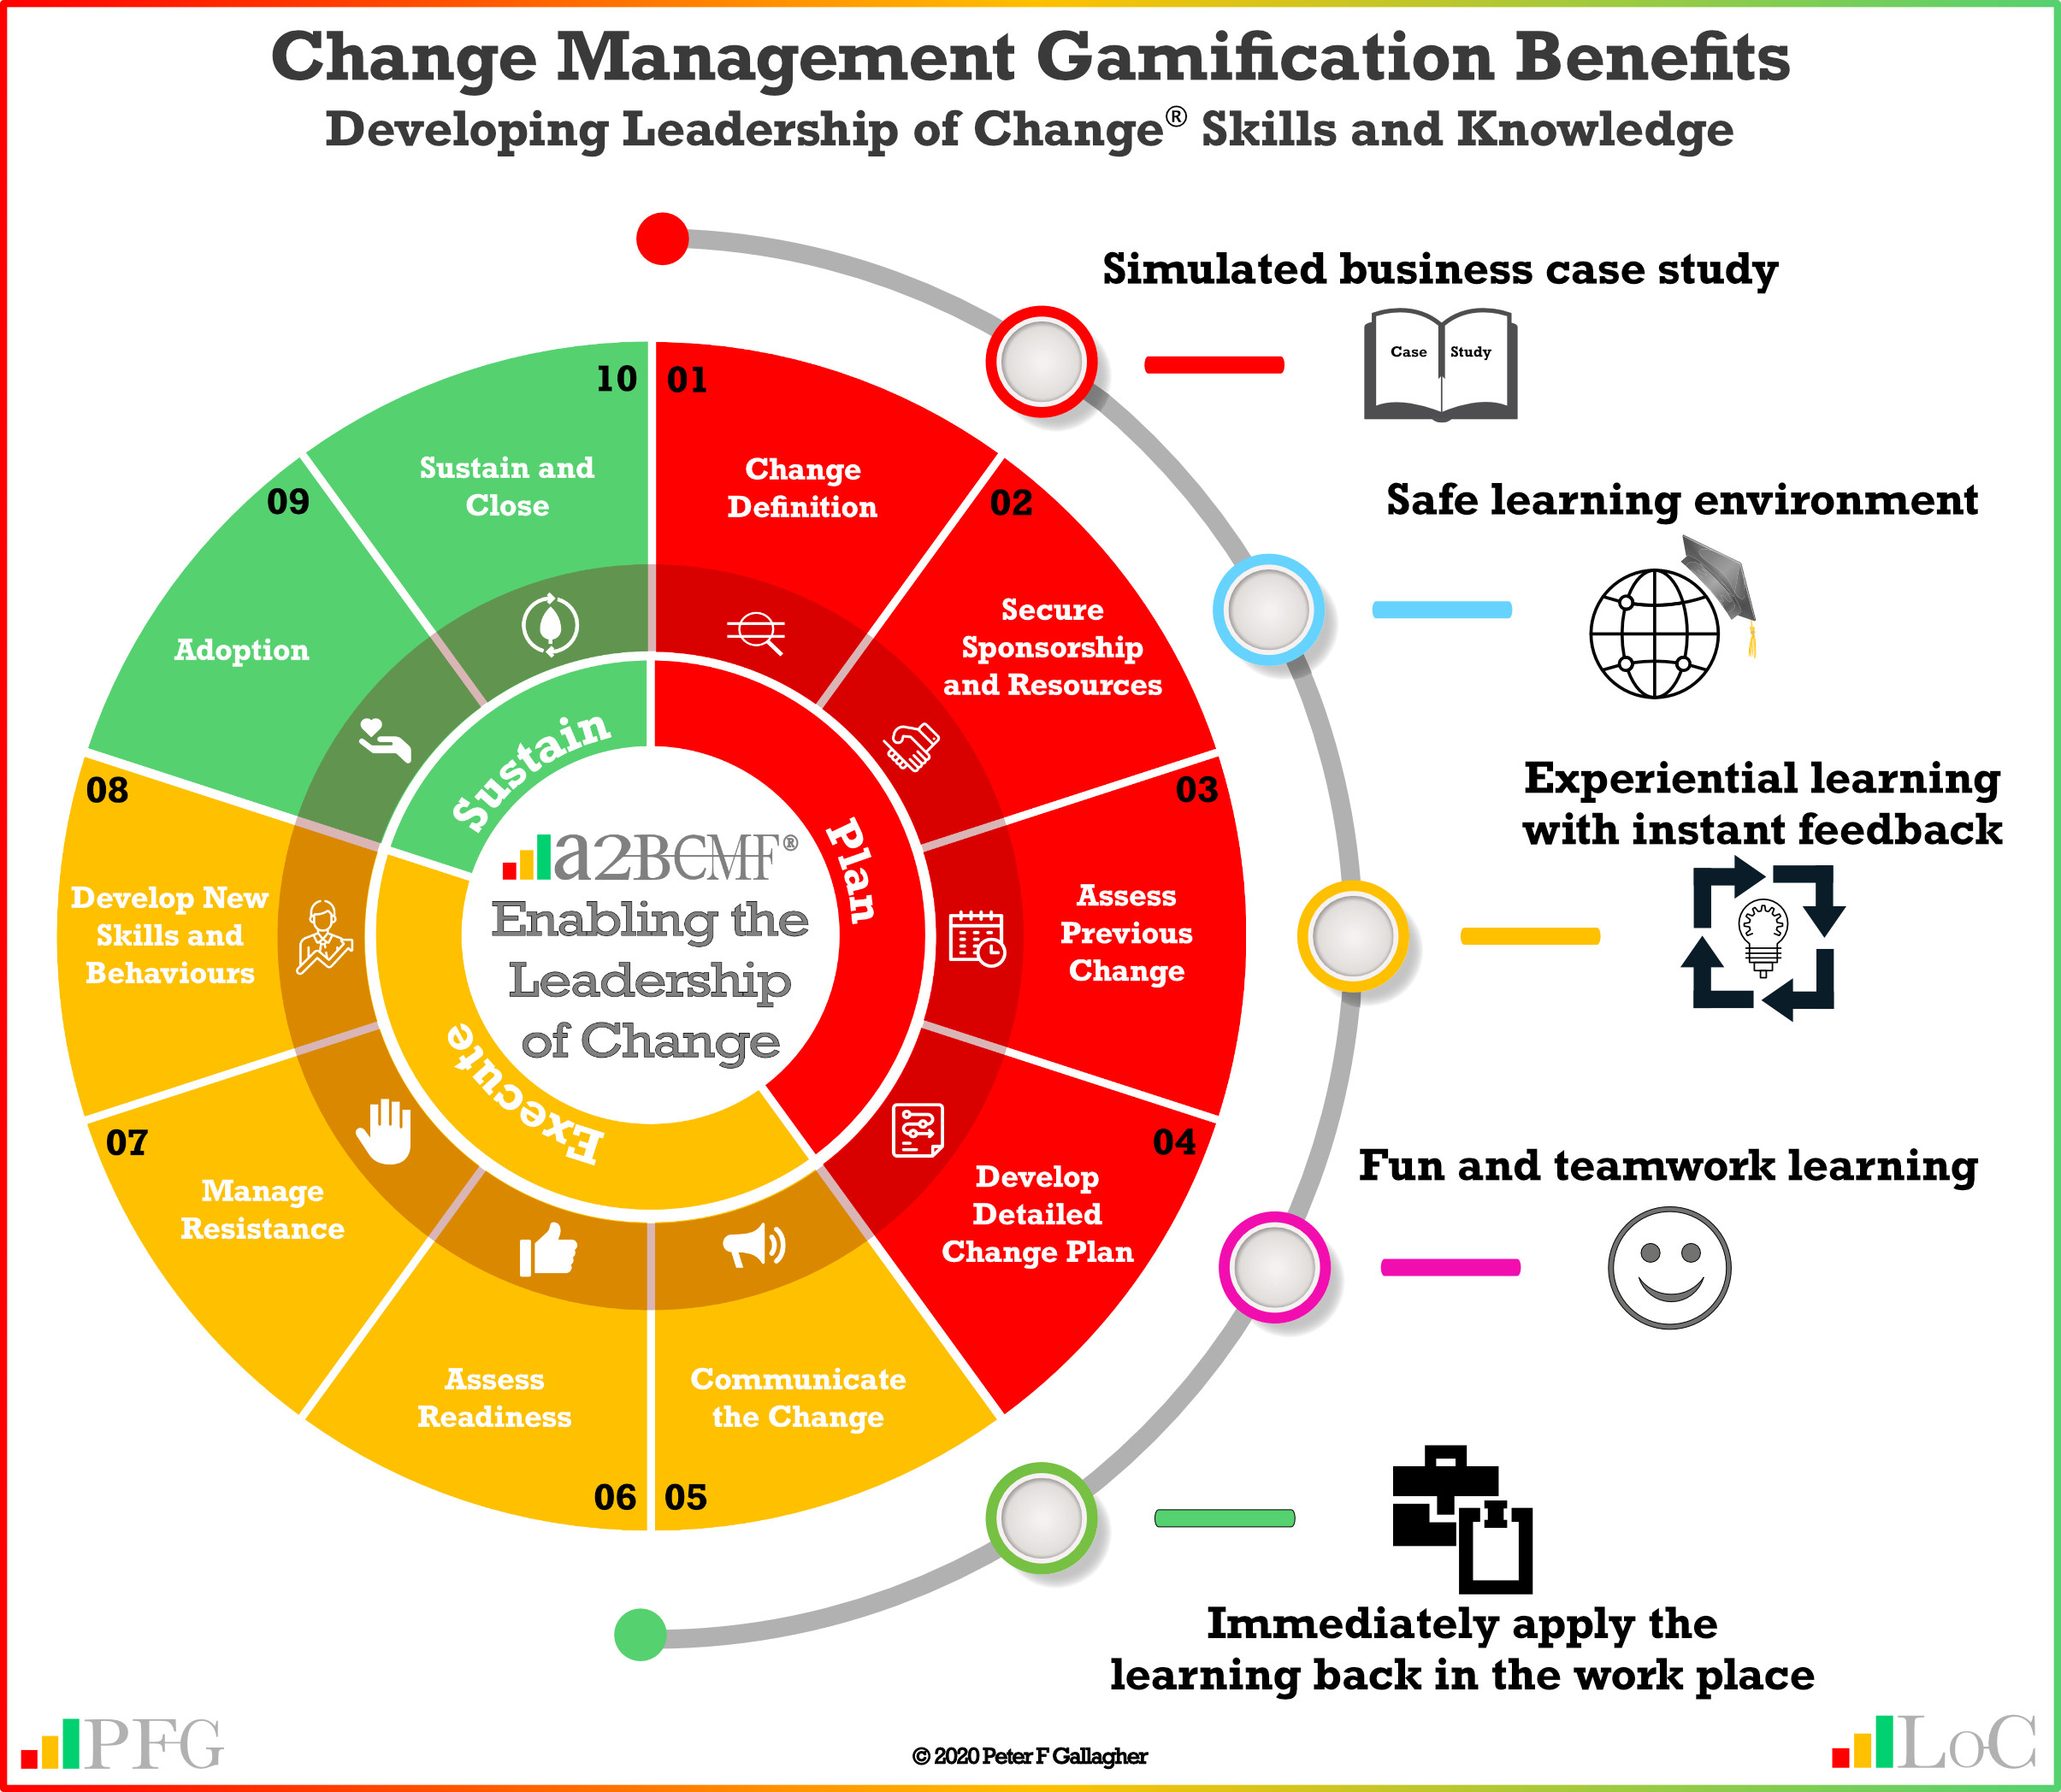 Change Management Gamification Peter F Gallagher Leadership of Change